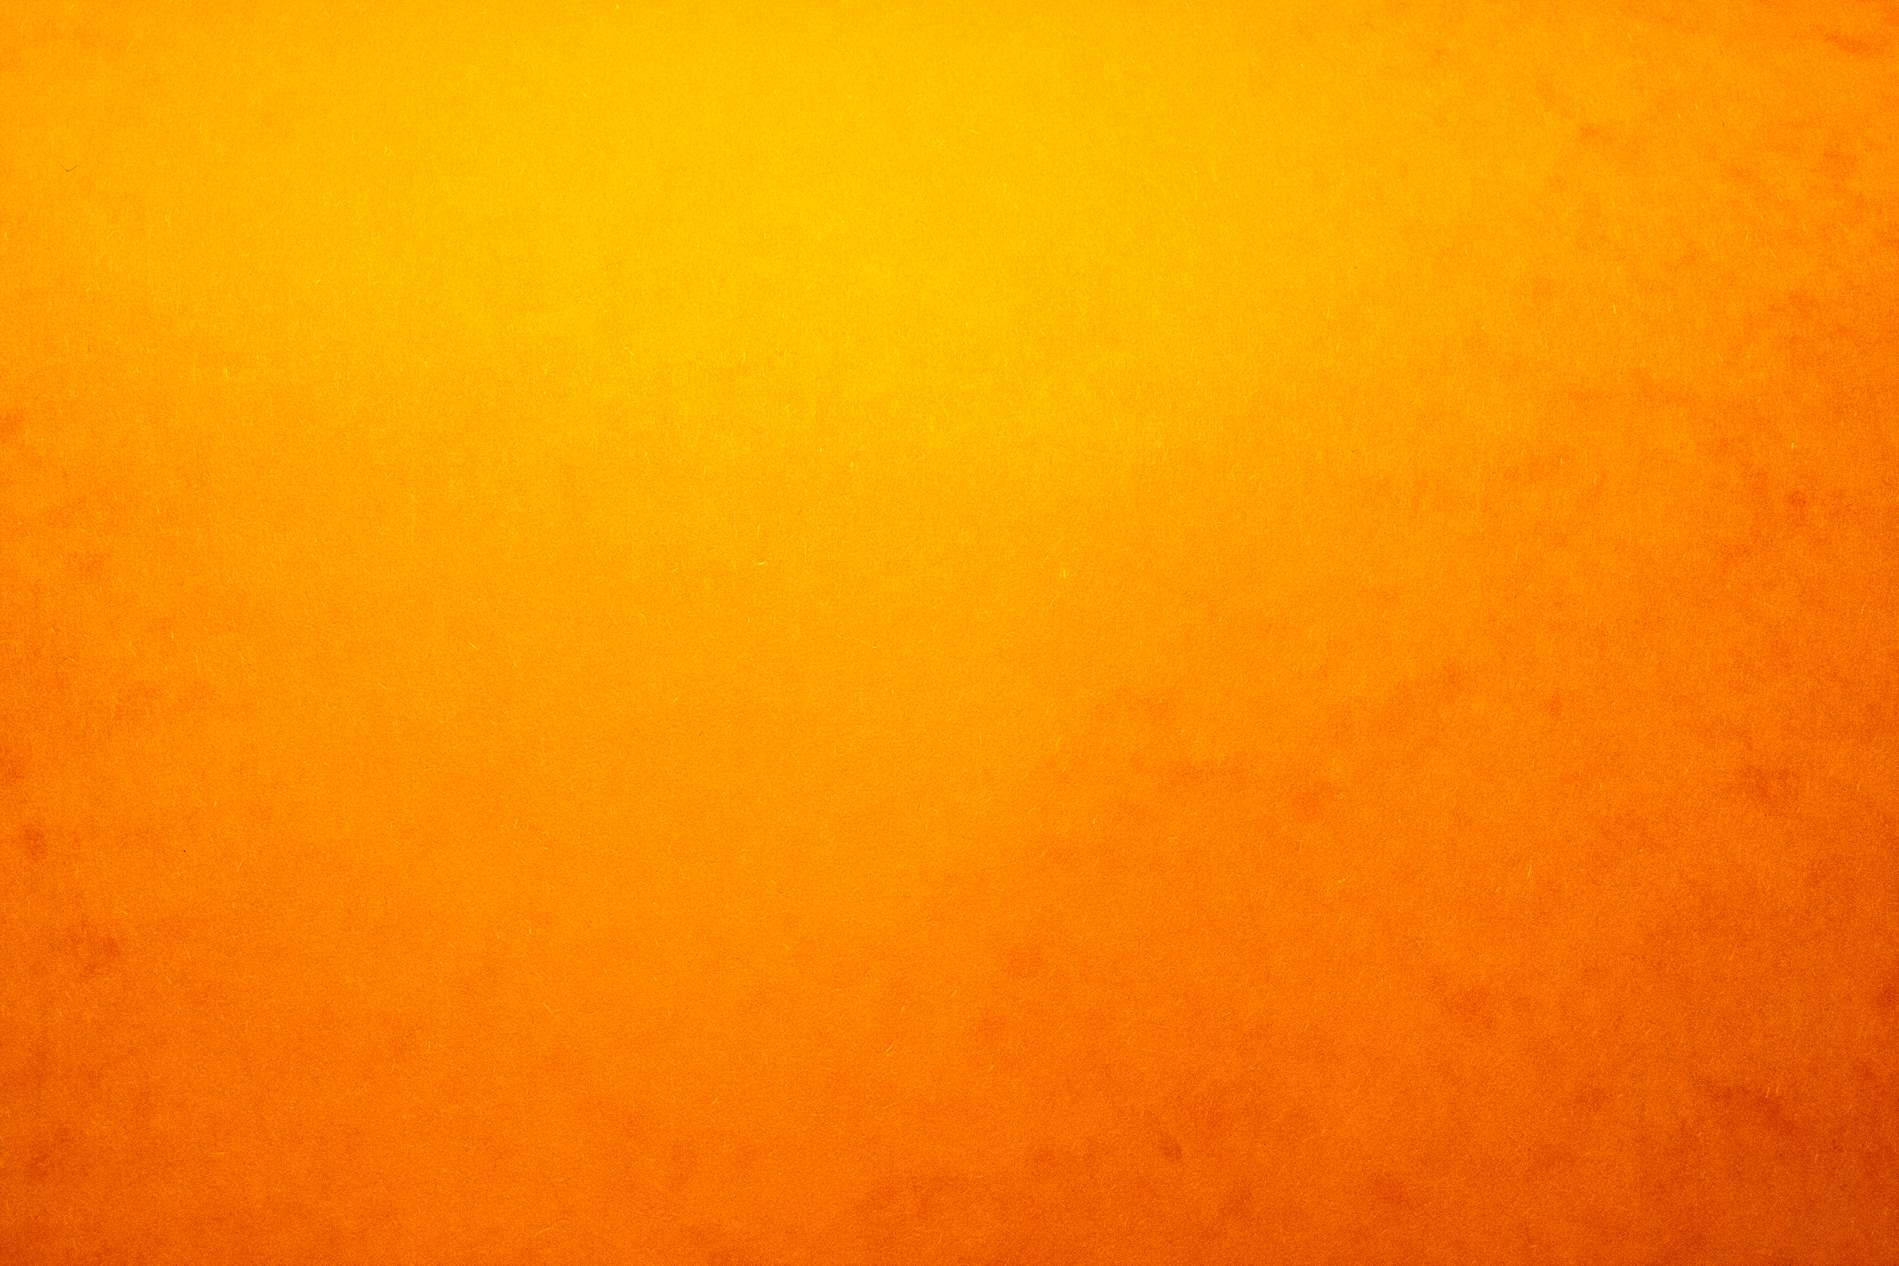 yellow orange cardboard paper background photohdx